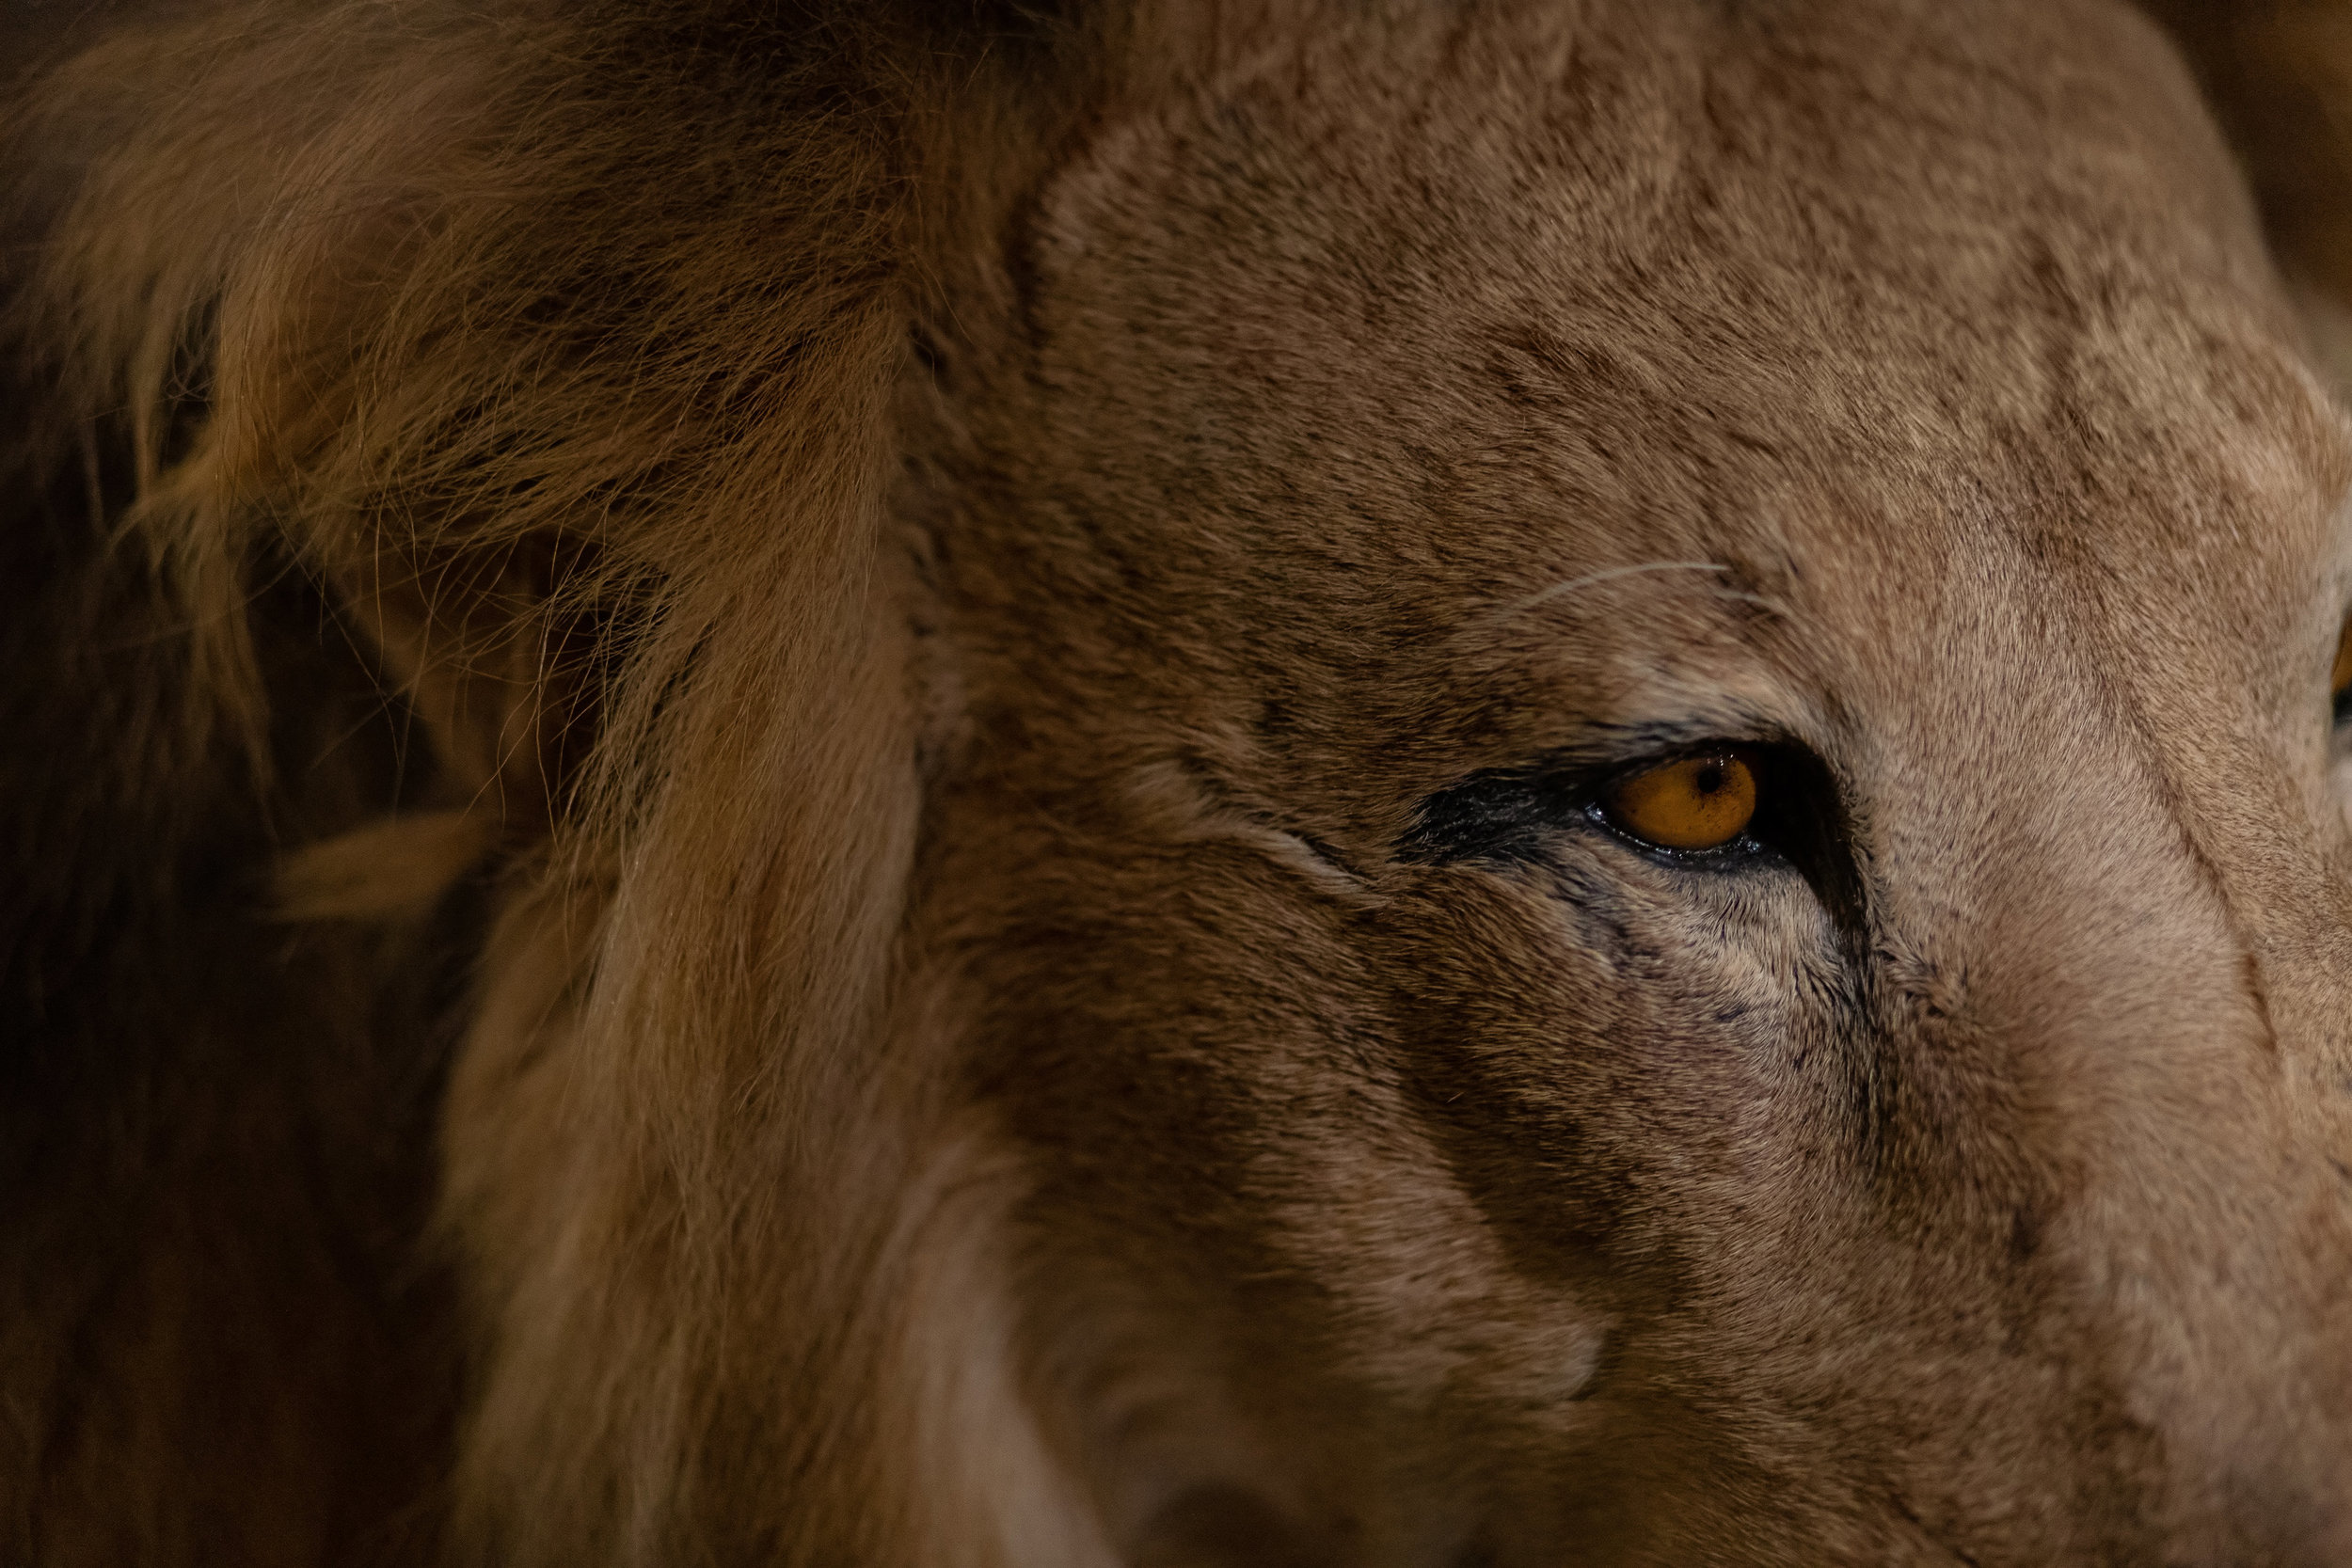 Close up of an African lion at the Naturkundemuseum, Berlin.